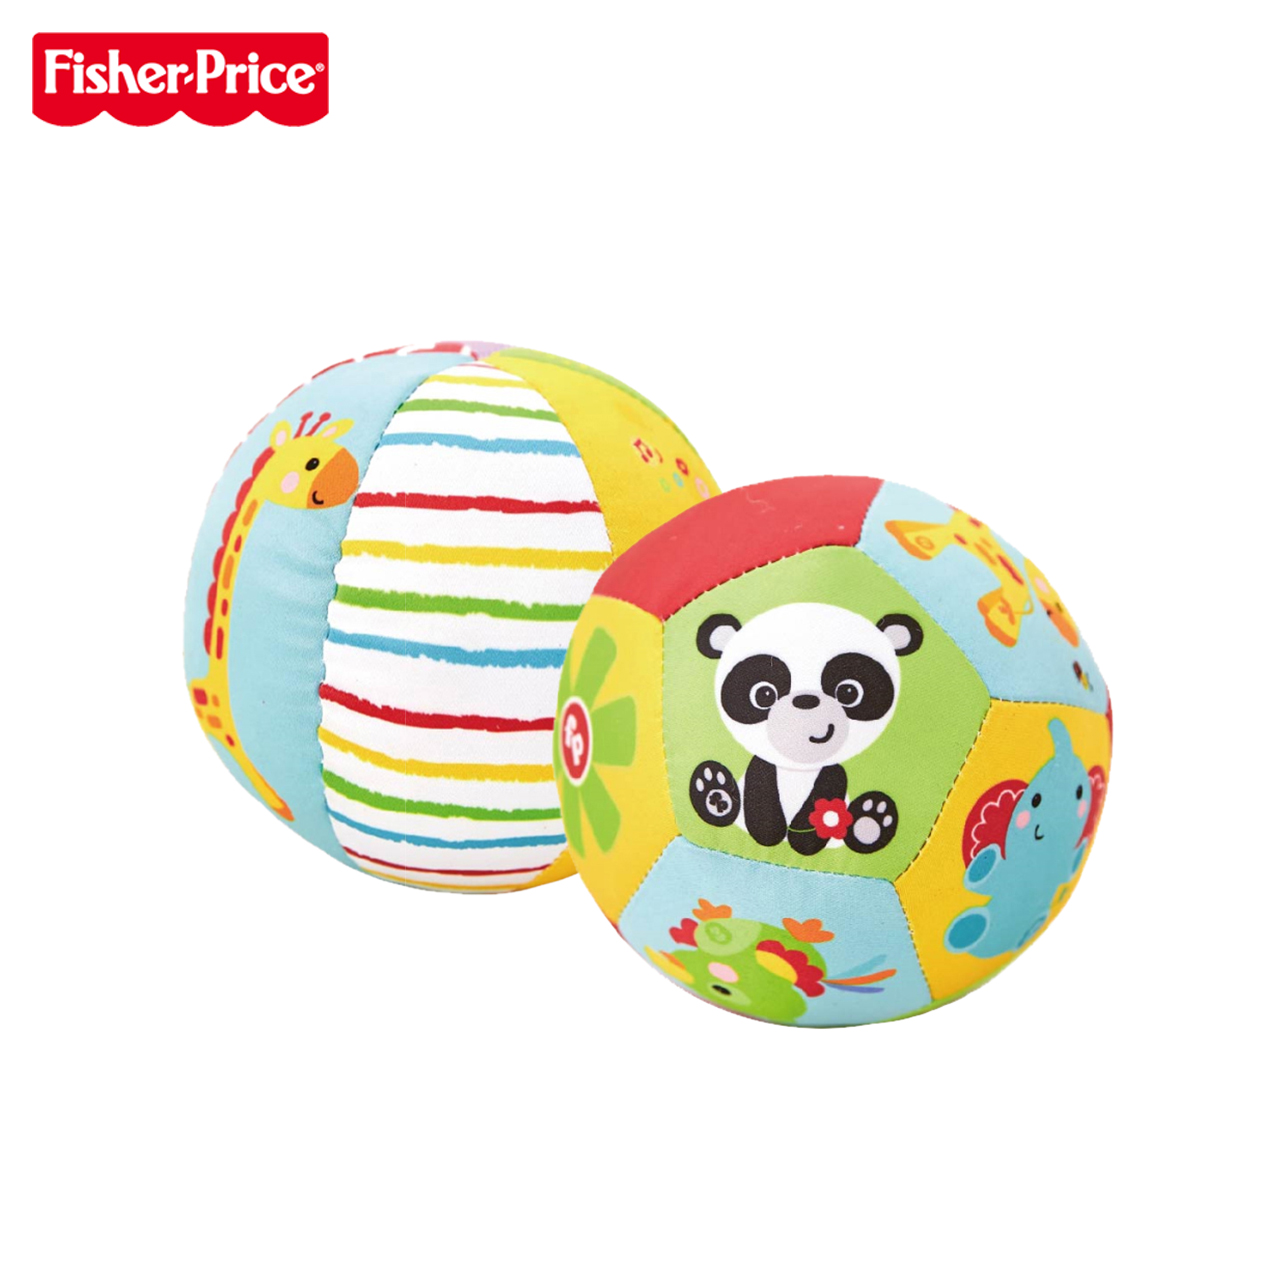 Us fisher animal cognition 4 inch ball ball infant grasping the ball rattles cloth ball toy ball bell ball baby